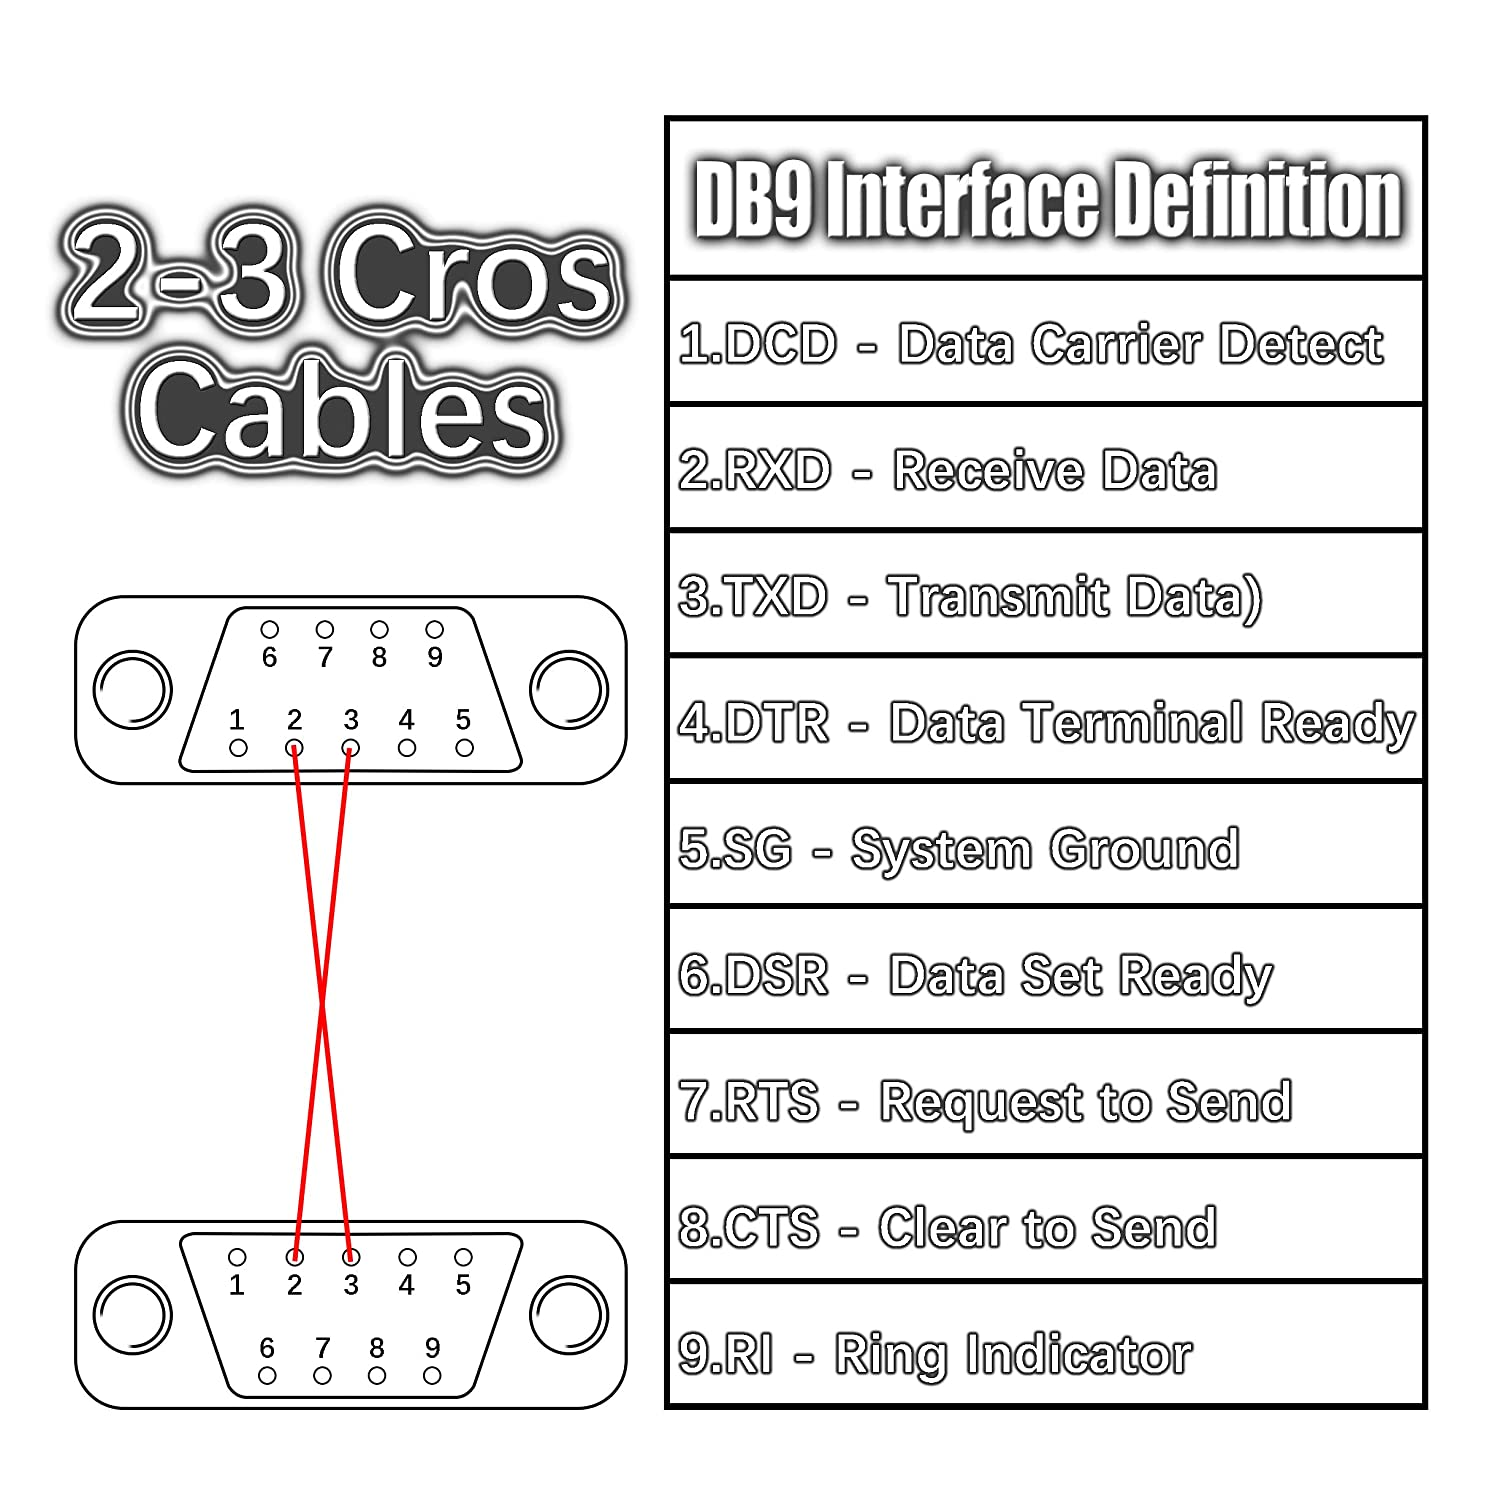 YACSEJAO DB9 RS232 Serial Null Modem Cable,1.35M//4.4ft RS232 Serial Port 2pin-3pin Crossover Serial Cable DB9 Male to Female Cable Cord Extension for Computers Printers Scanners